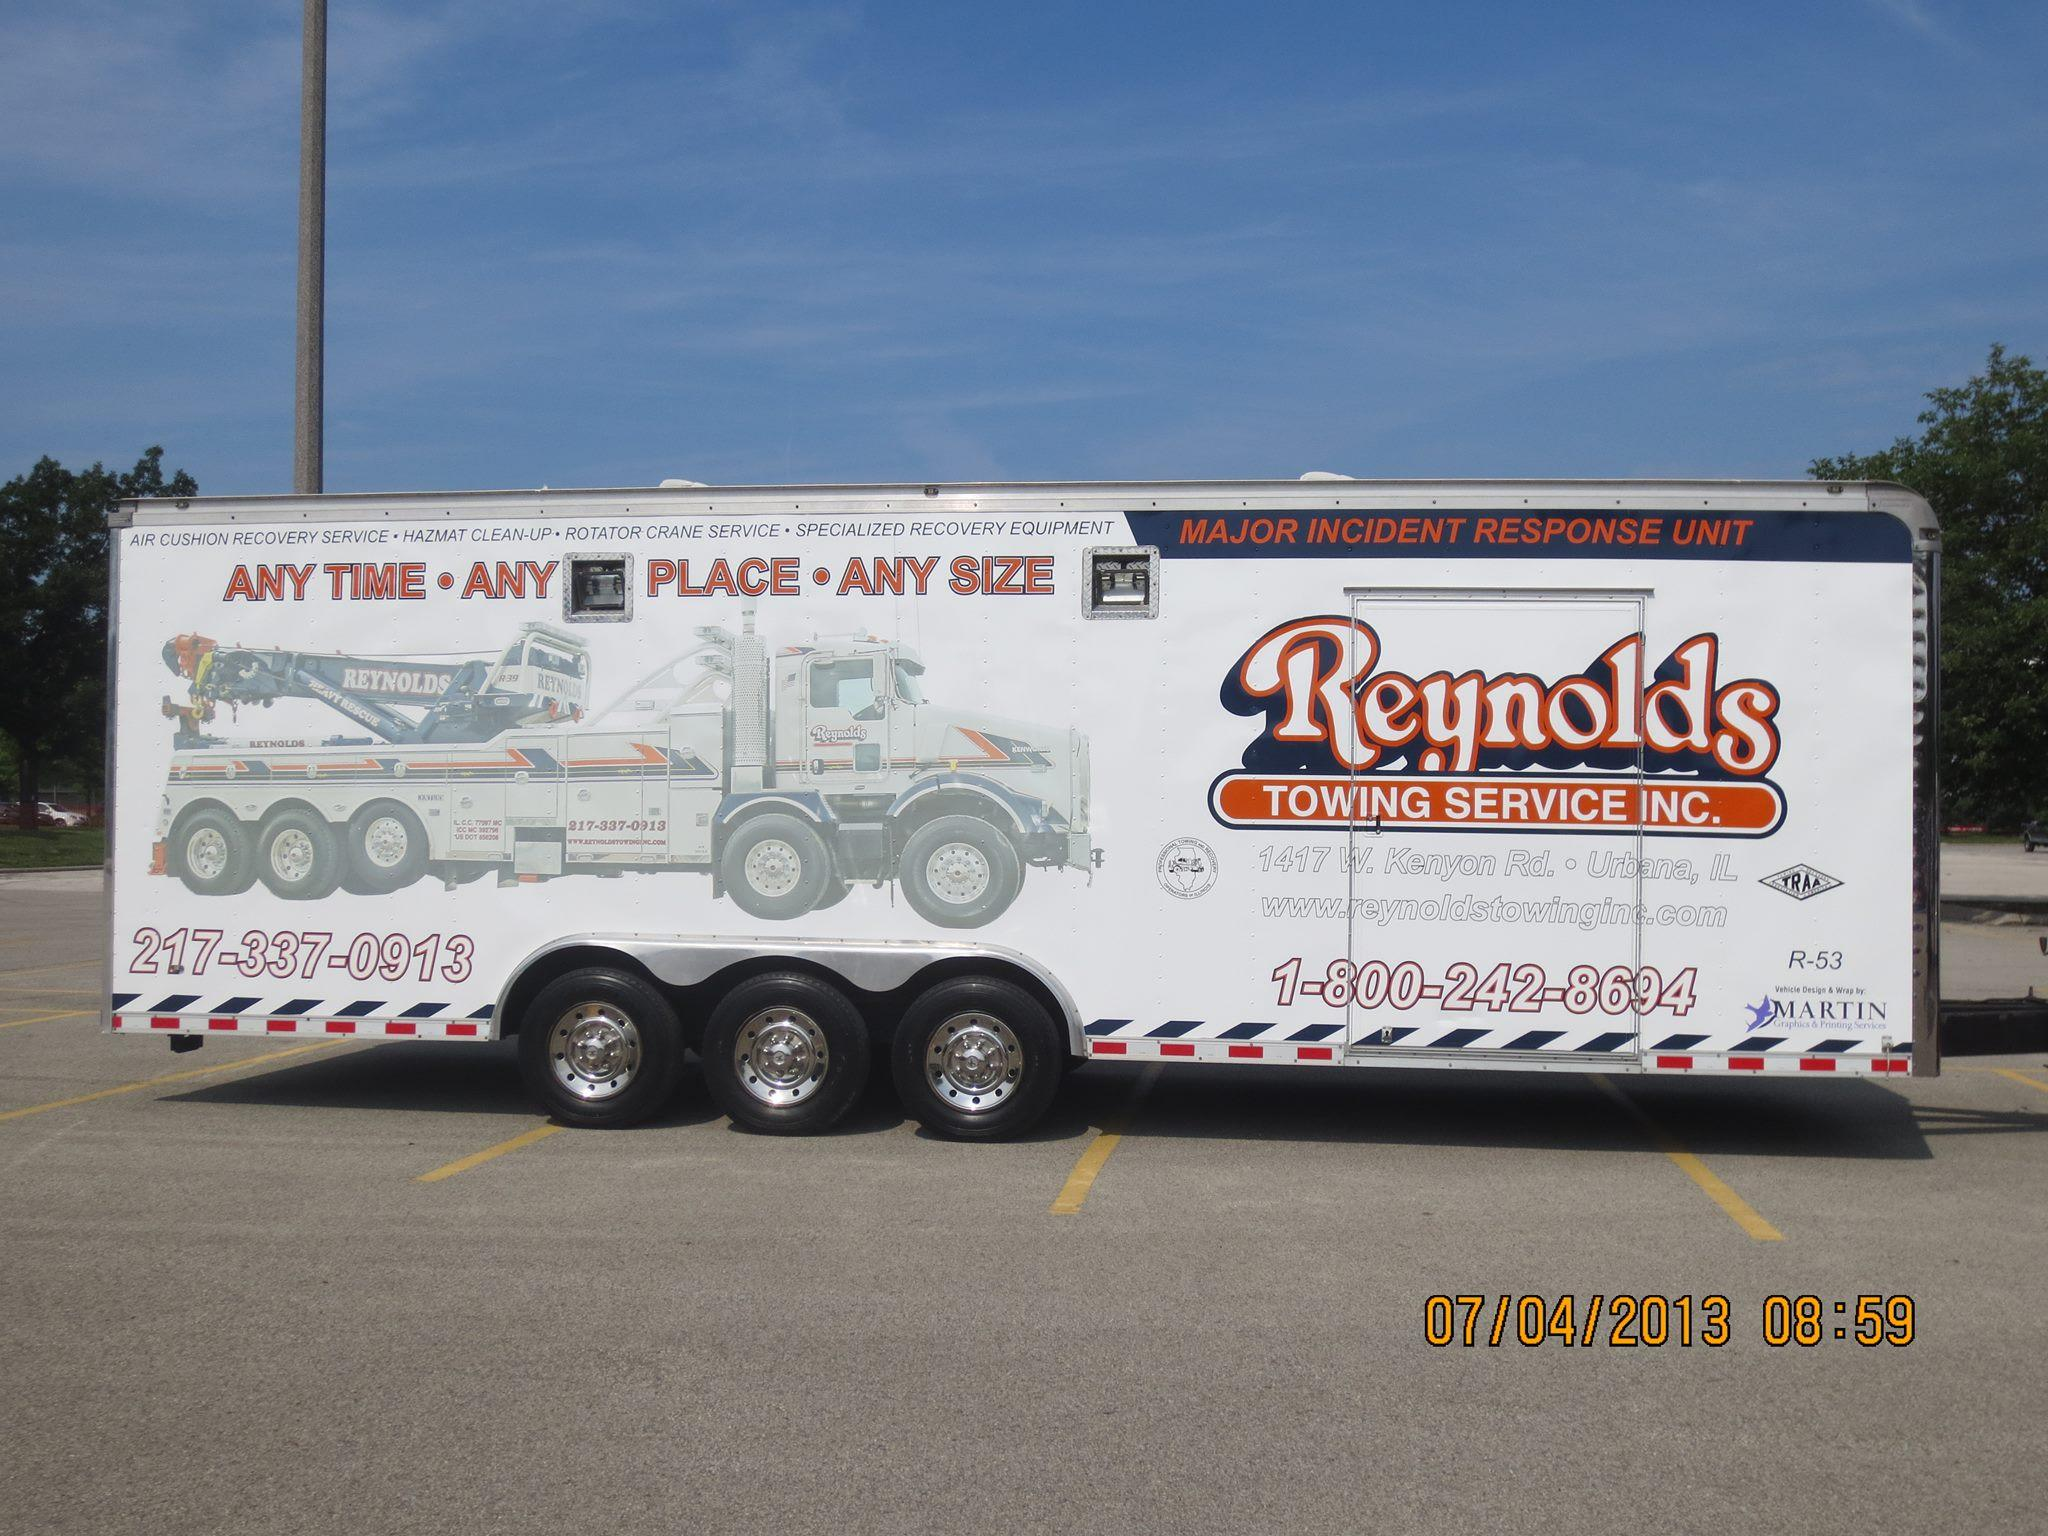 Reynolds Towing Service image 7